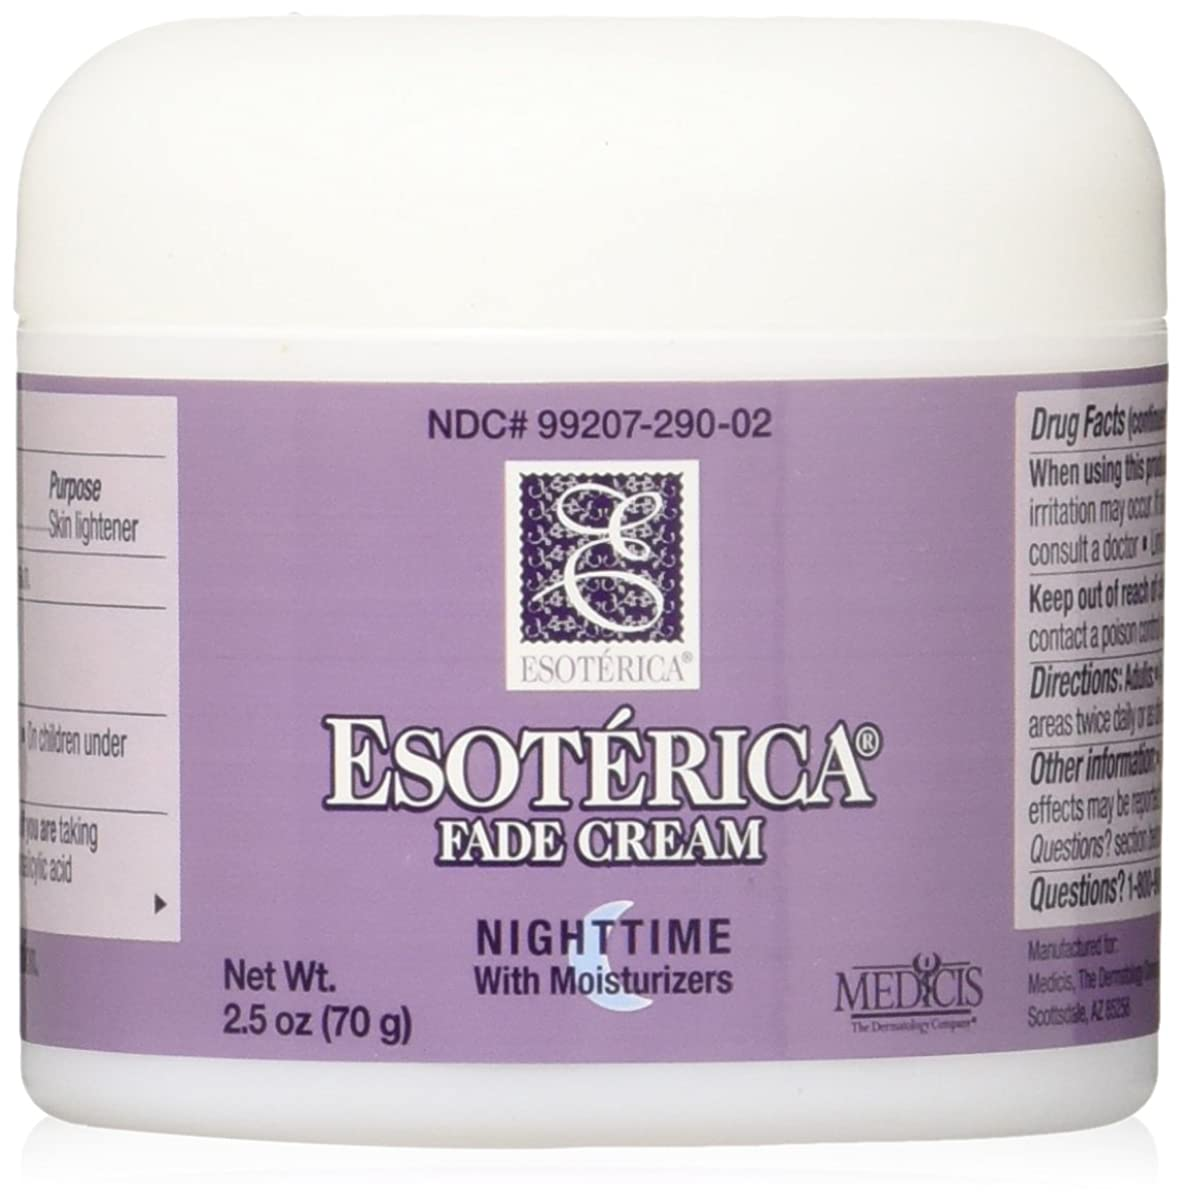 更新うま歌海外直送品Esoterica Fade Cream Nighttime With Moisturizers, 2.5 oz by Esoterica